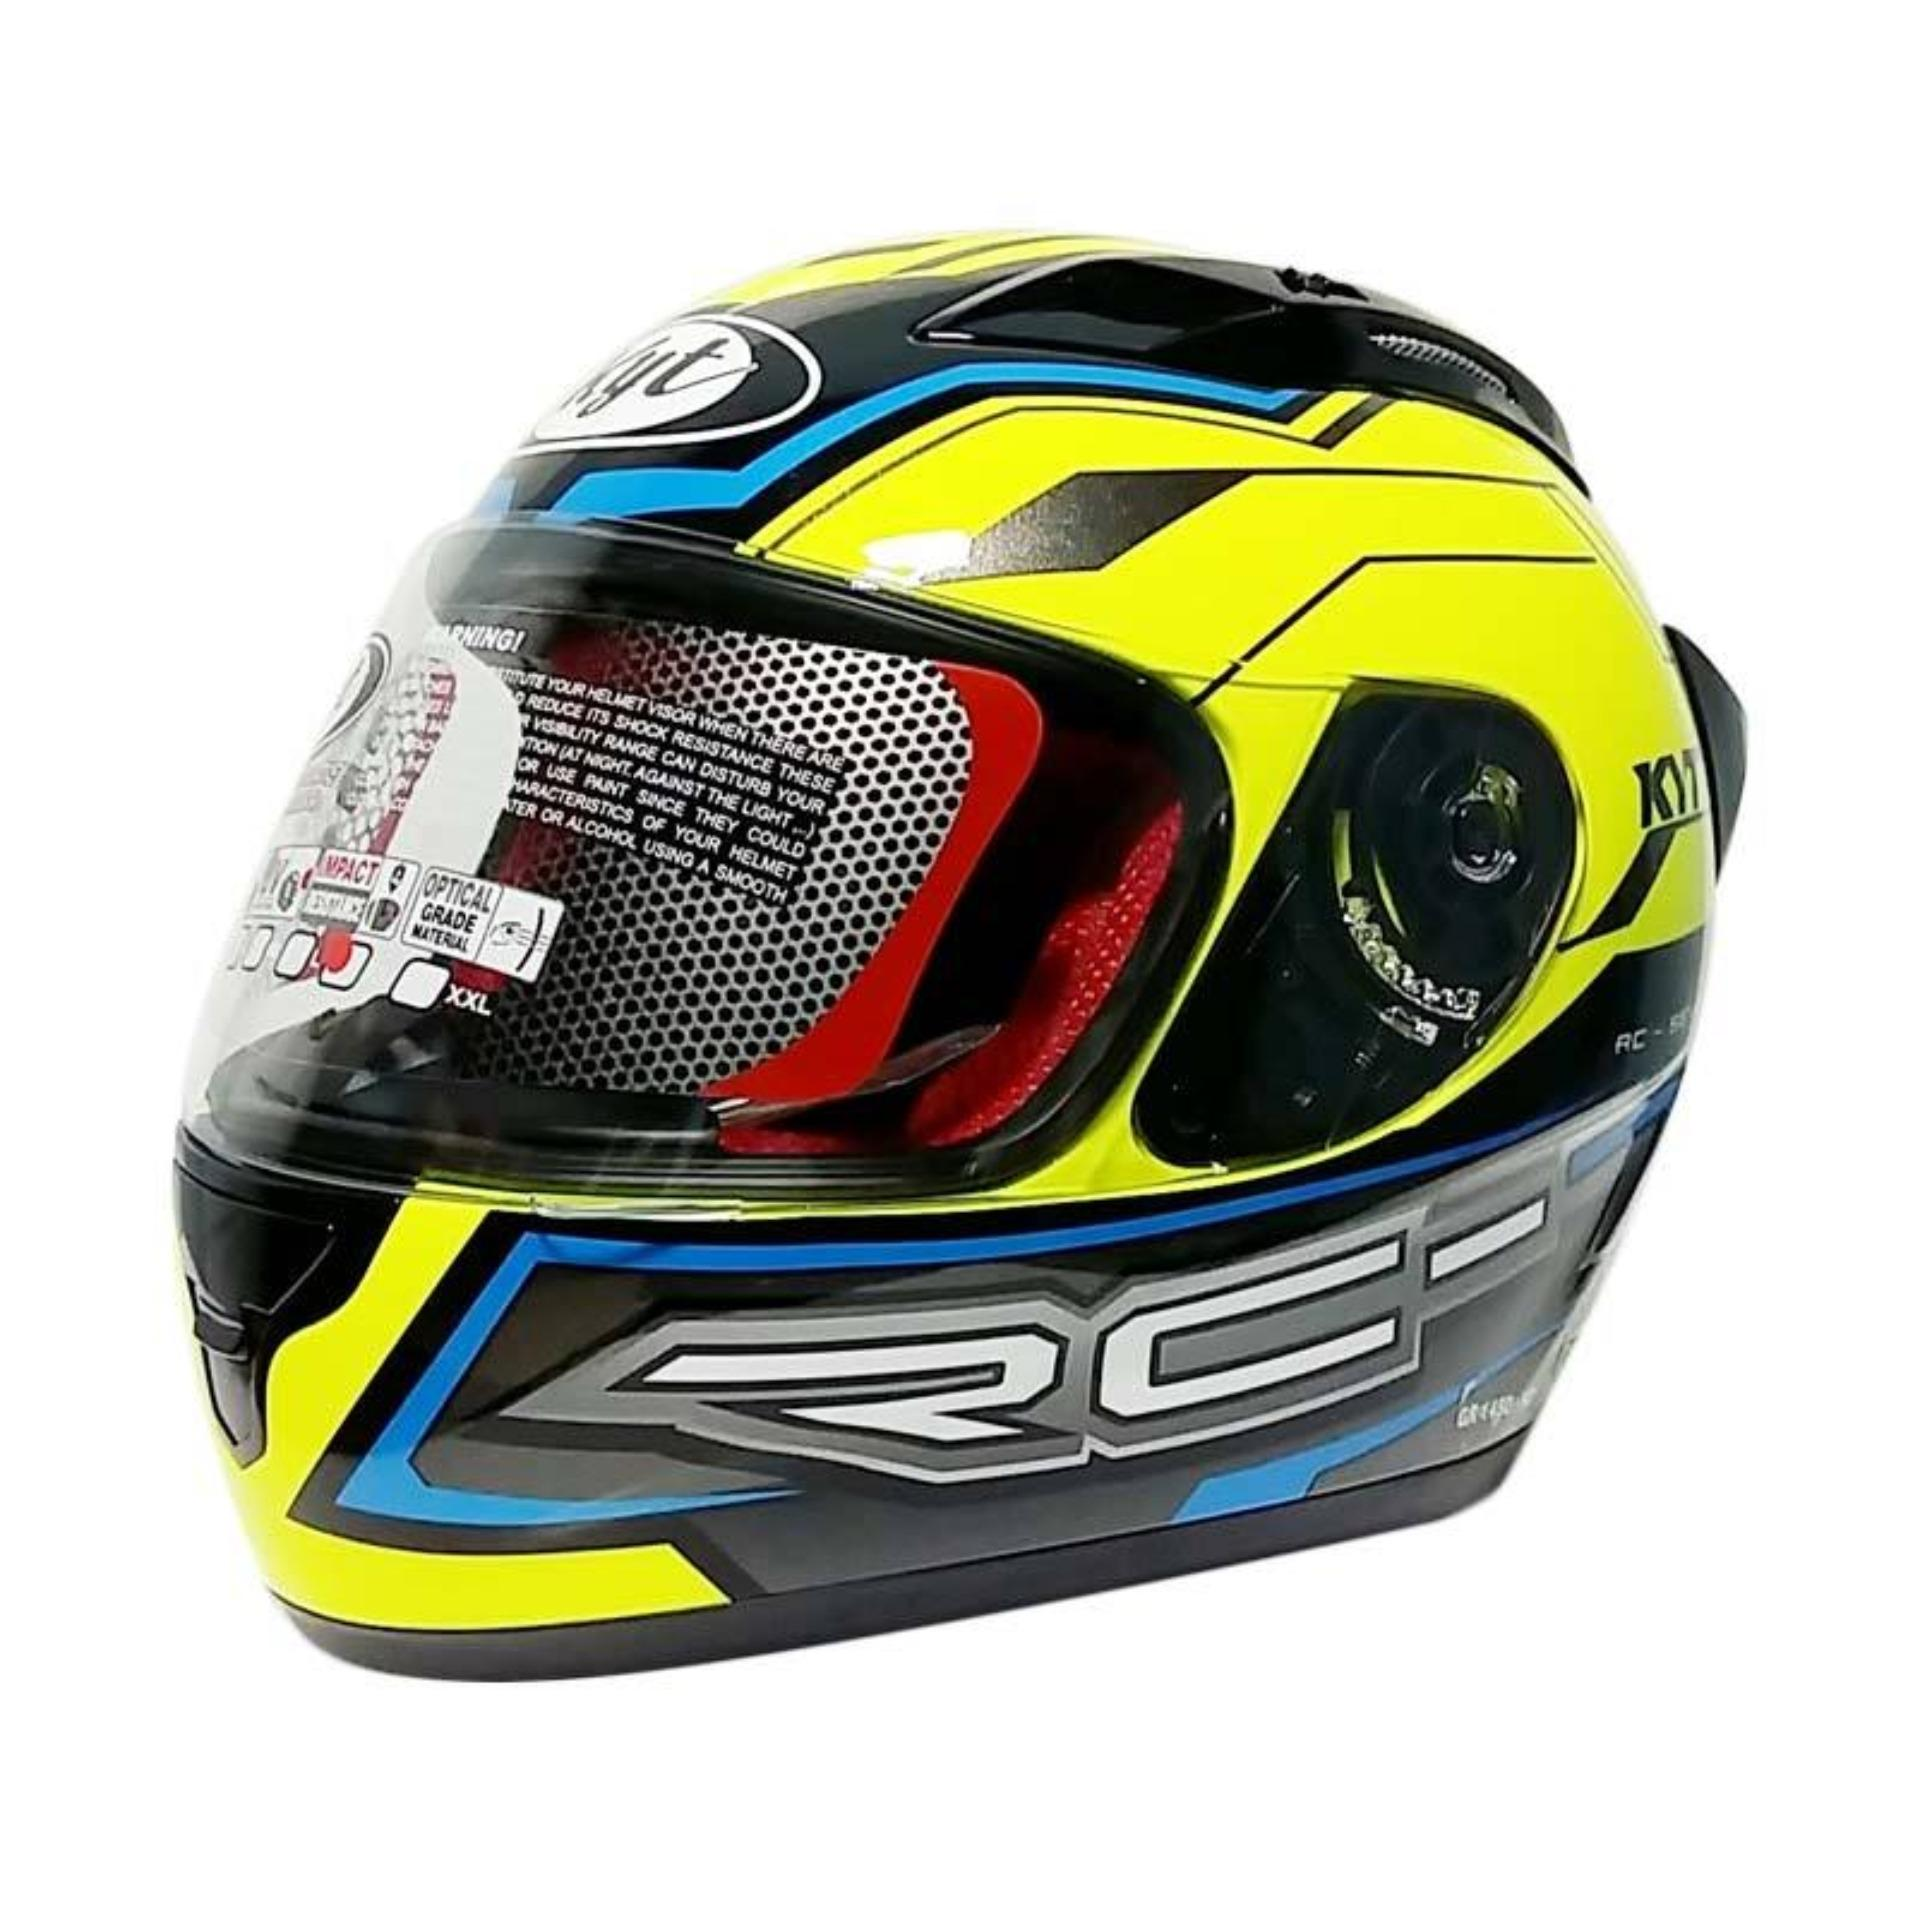 Kualitas Kyt Rc Seven 14 Helm Full Face Yellow Blue Black Kyt